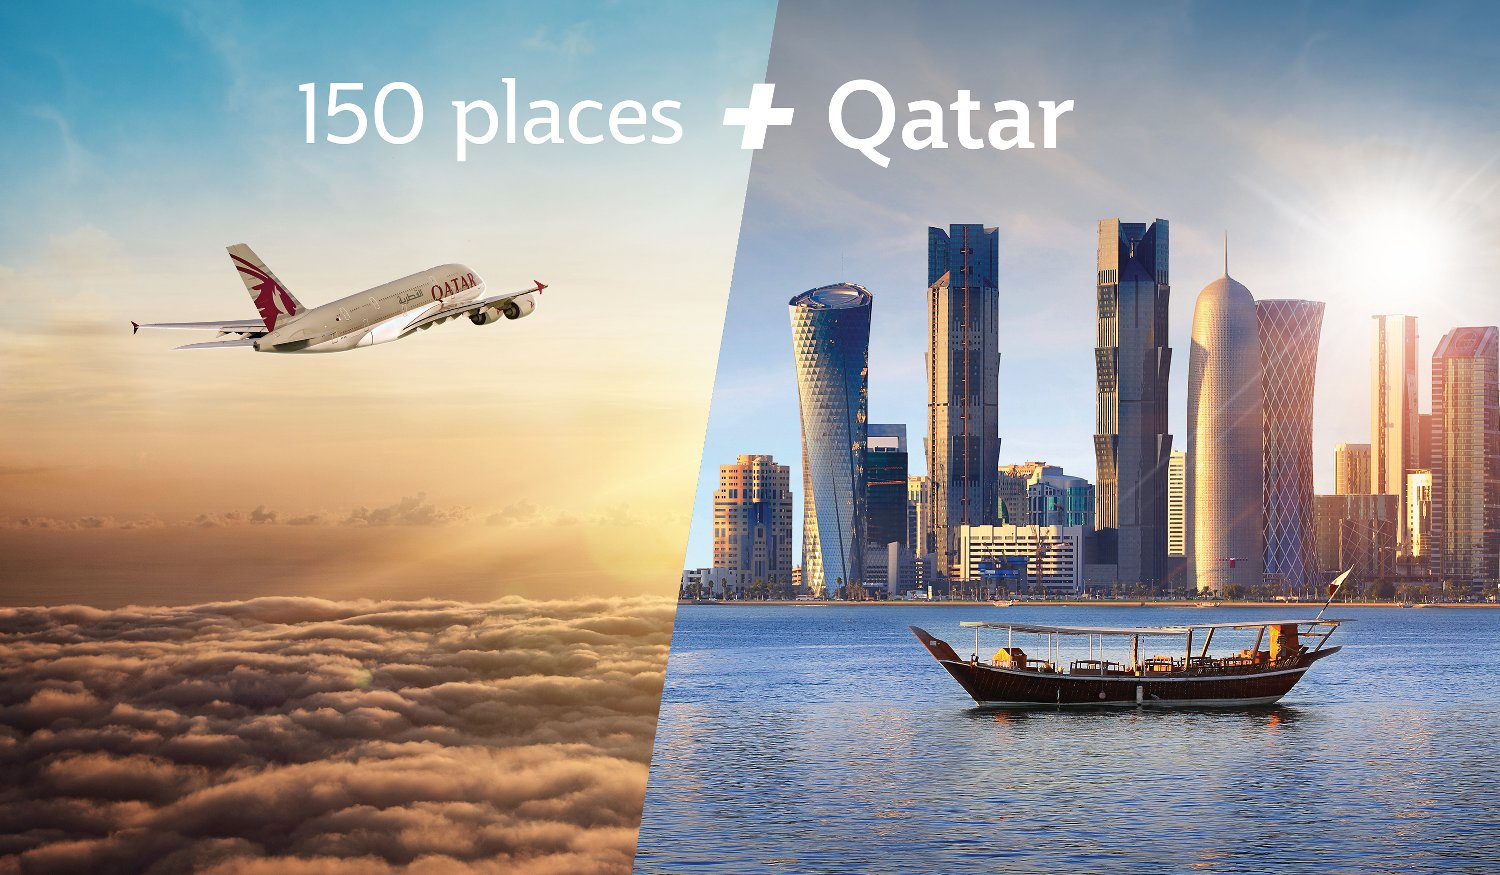 Qatar Airways offers free Doha stopover to passengers in transit in  partnership with Qatar Tourism Authority. - Guide 2 Uganda